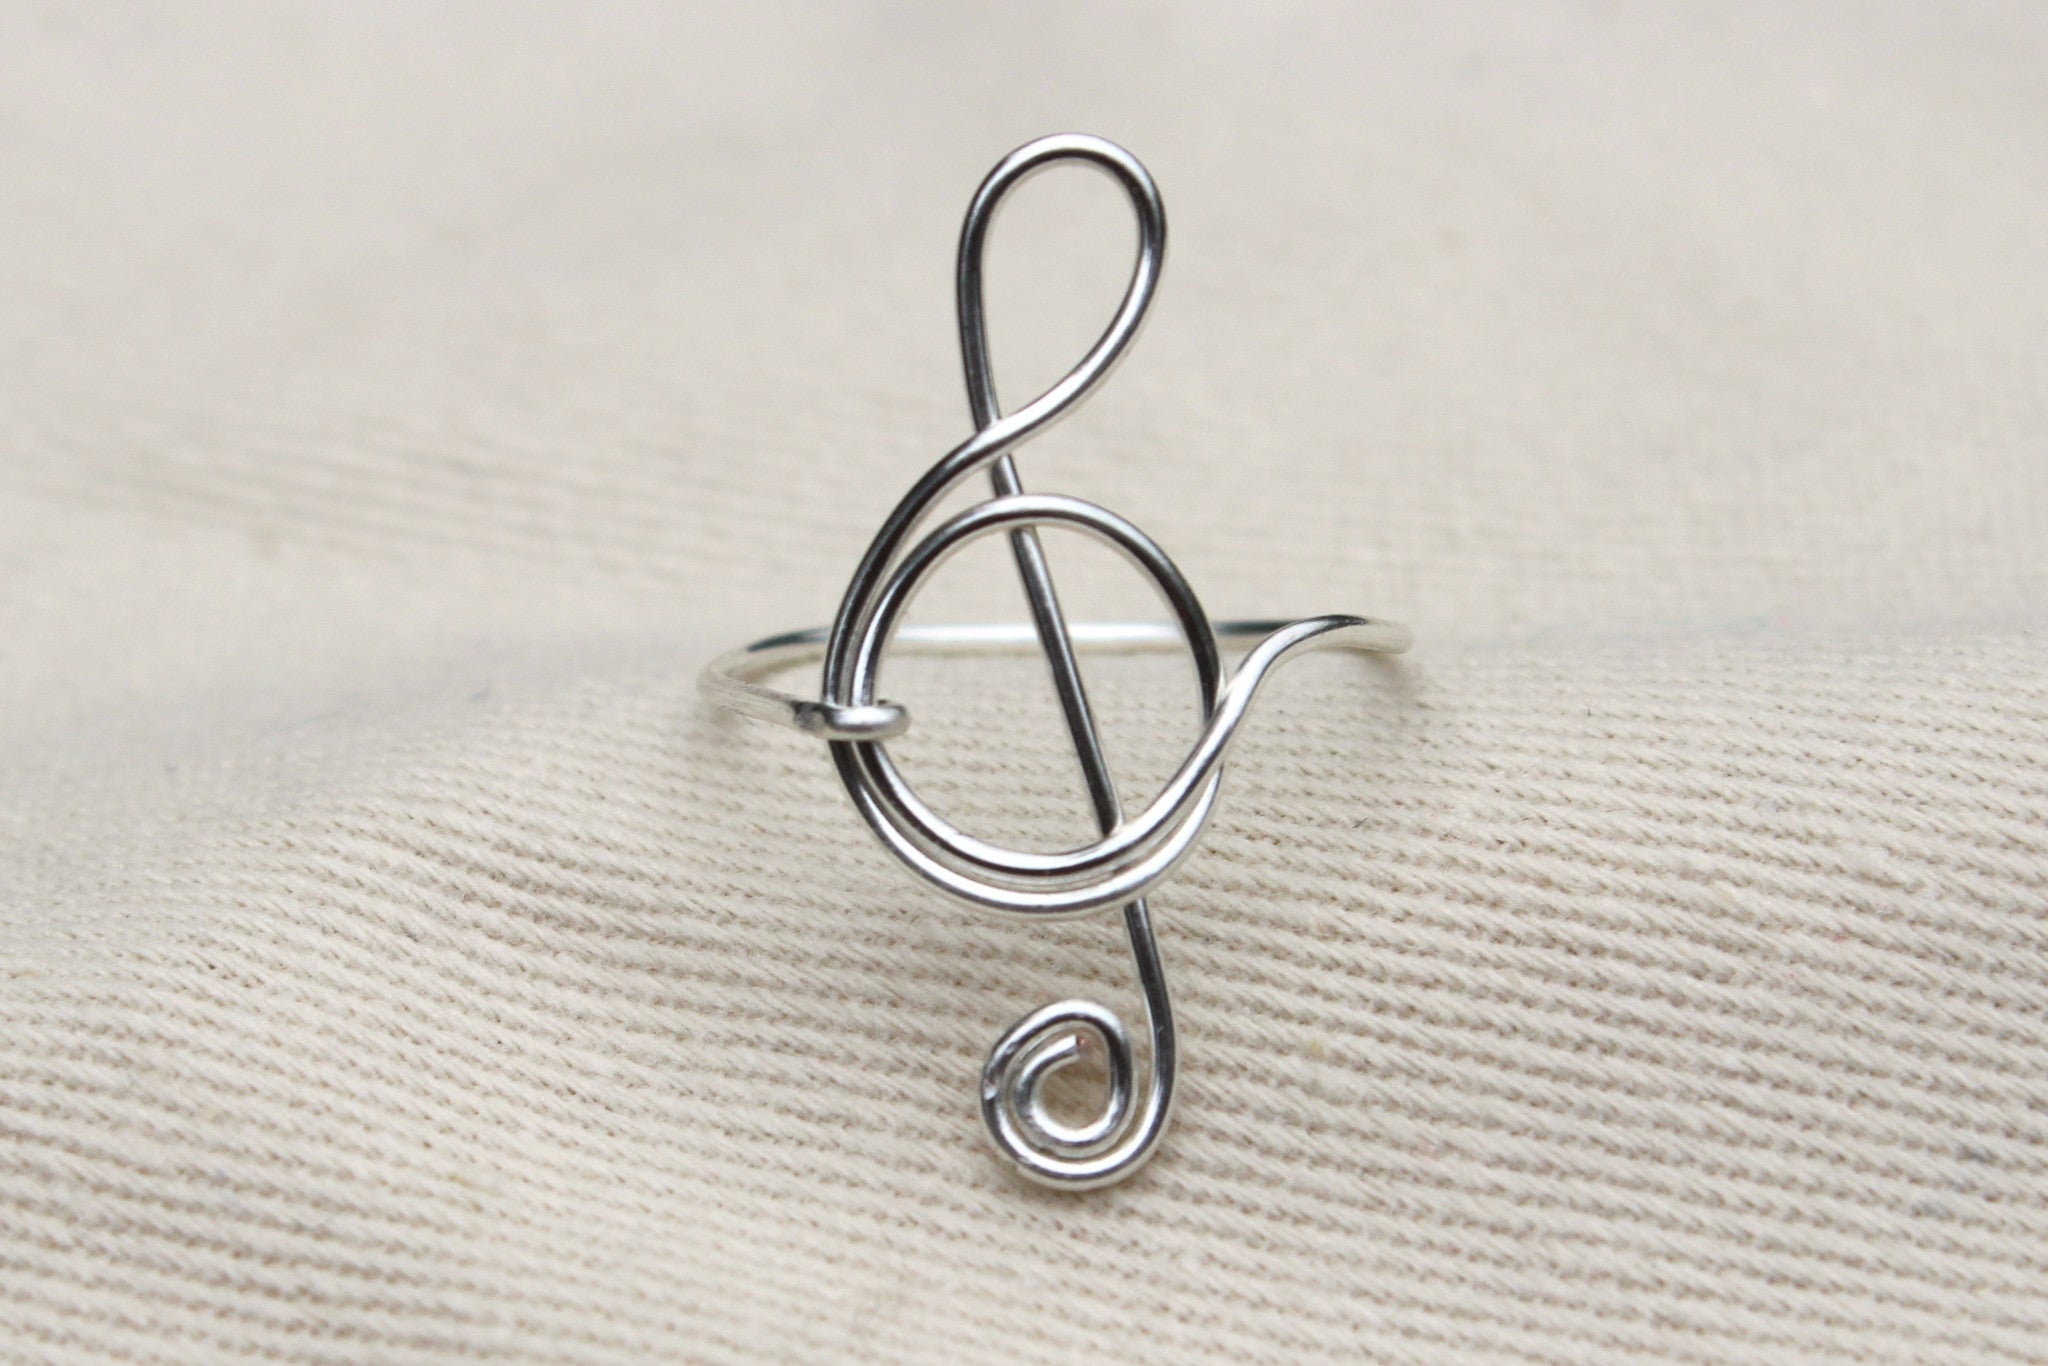 Treble Clef Ring - Designed By Lei